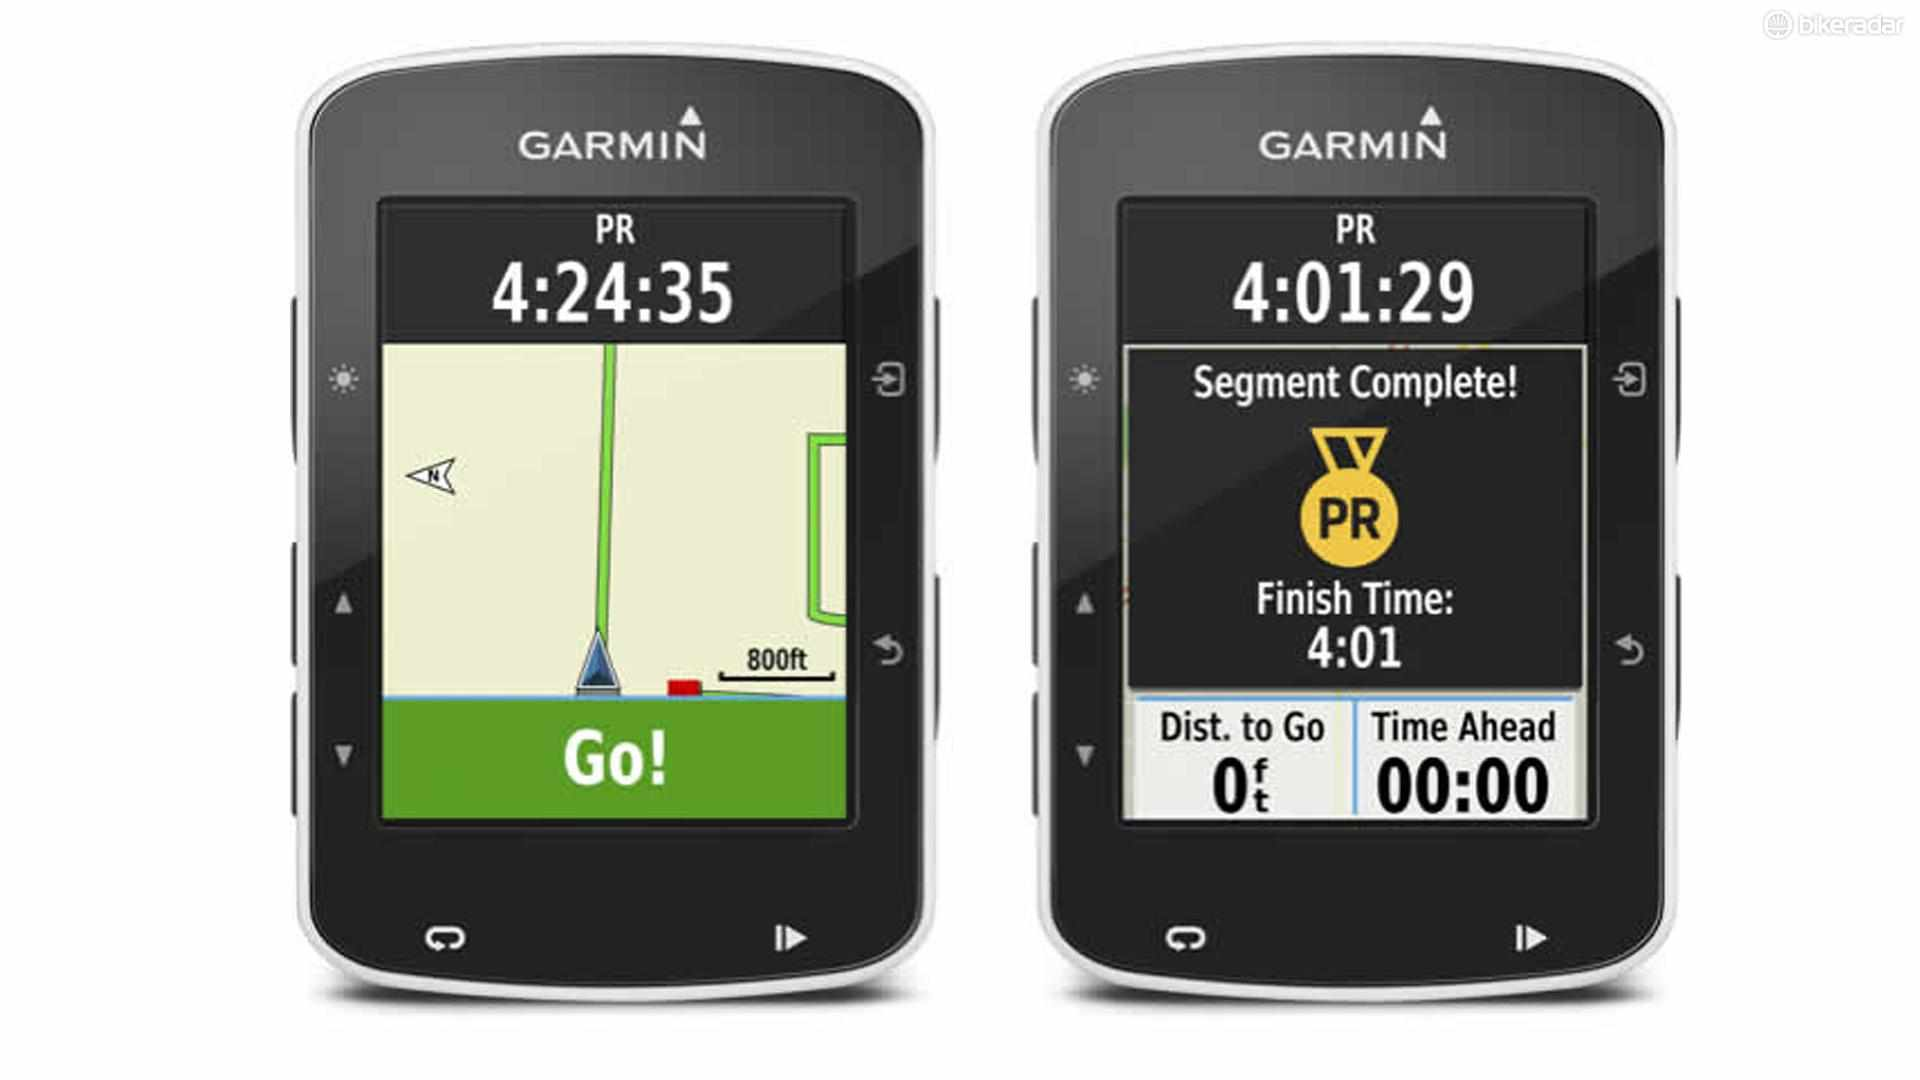 Strava Live segments were first released as a function on the Garmin Edge 520